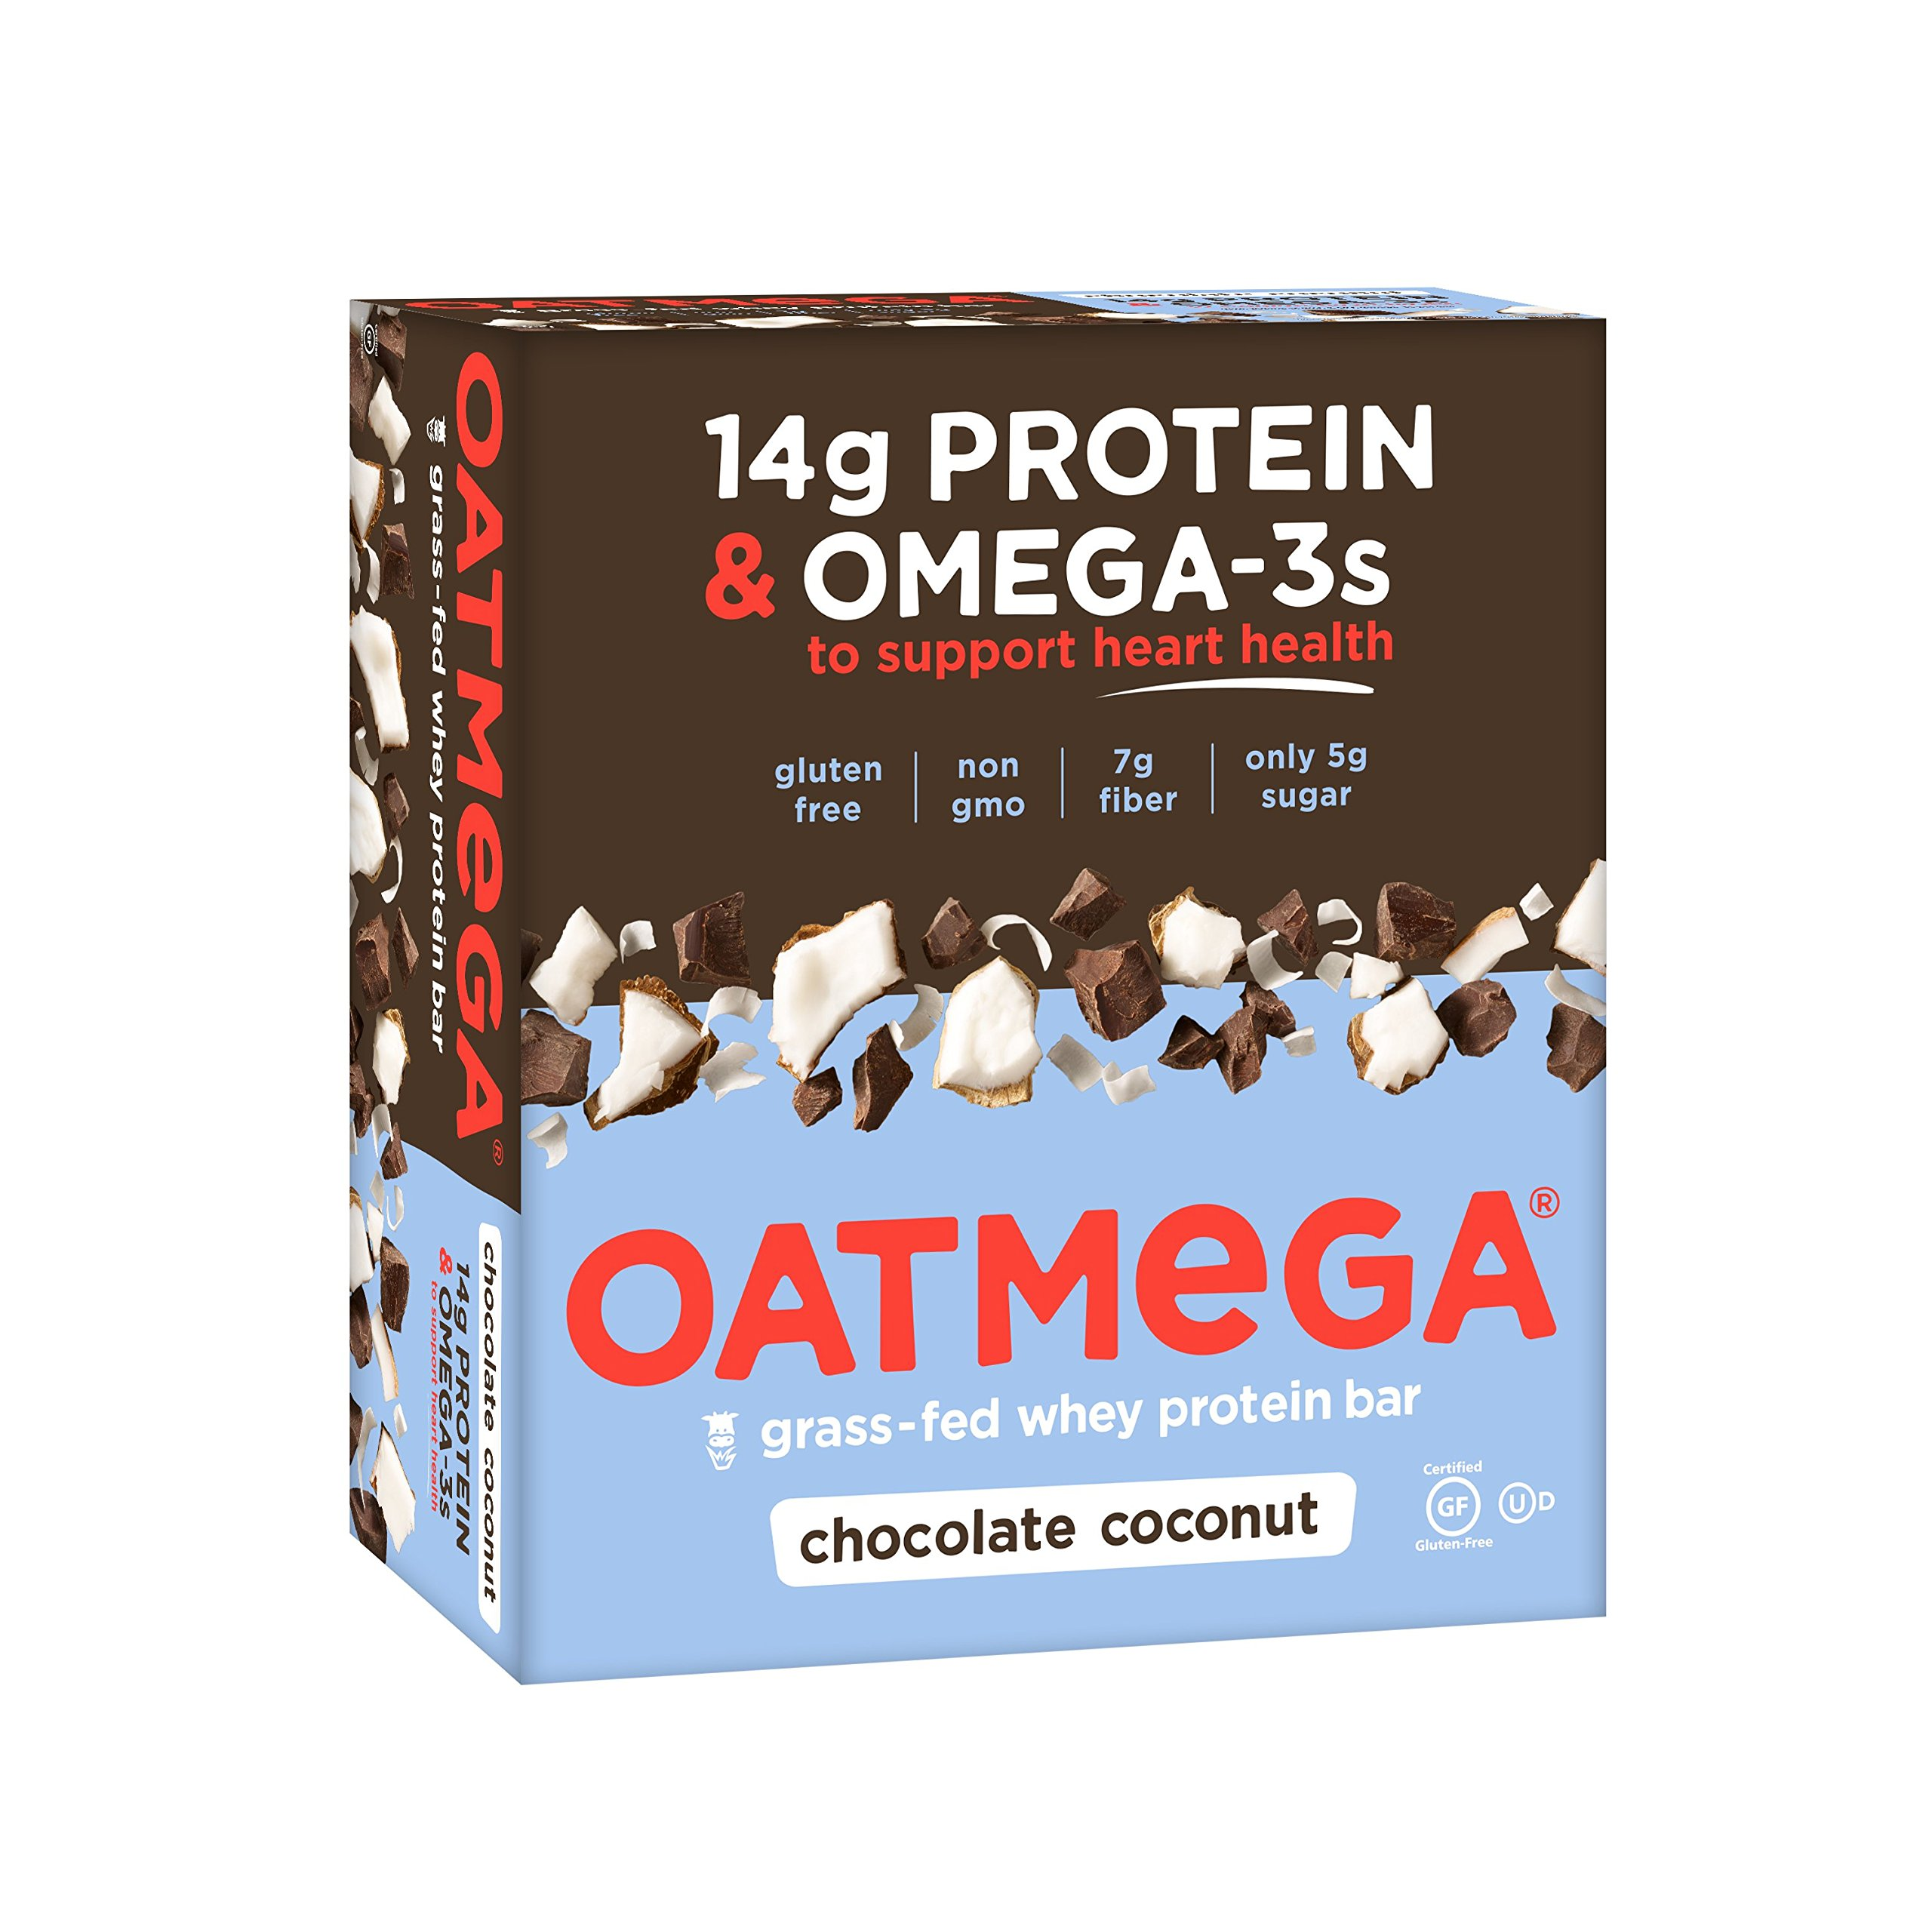 OATMEGA Protein Bar, Chocolate Coconut, Energy Bars Made with Omega-3 and Grass-Fed Whey Protein, Healthy Snacks, Gluten Free Protein Bars, Whey Protein Bars, Nutrition Bars, 1.8 Ounce (12 Count) by Oatmega